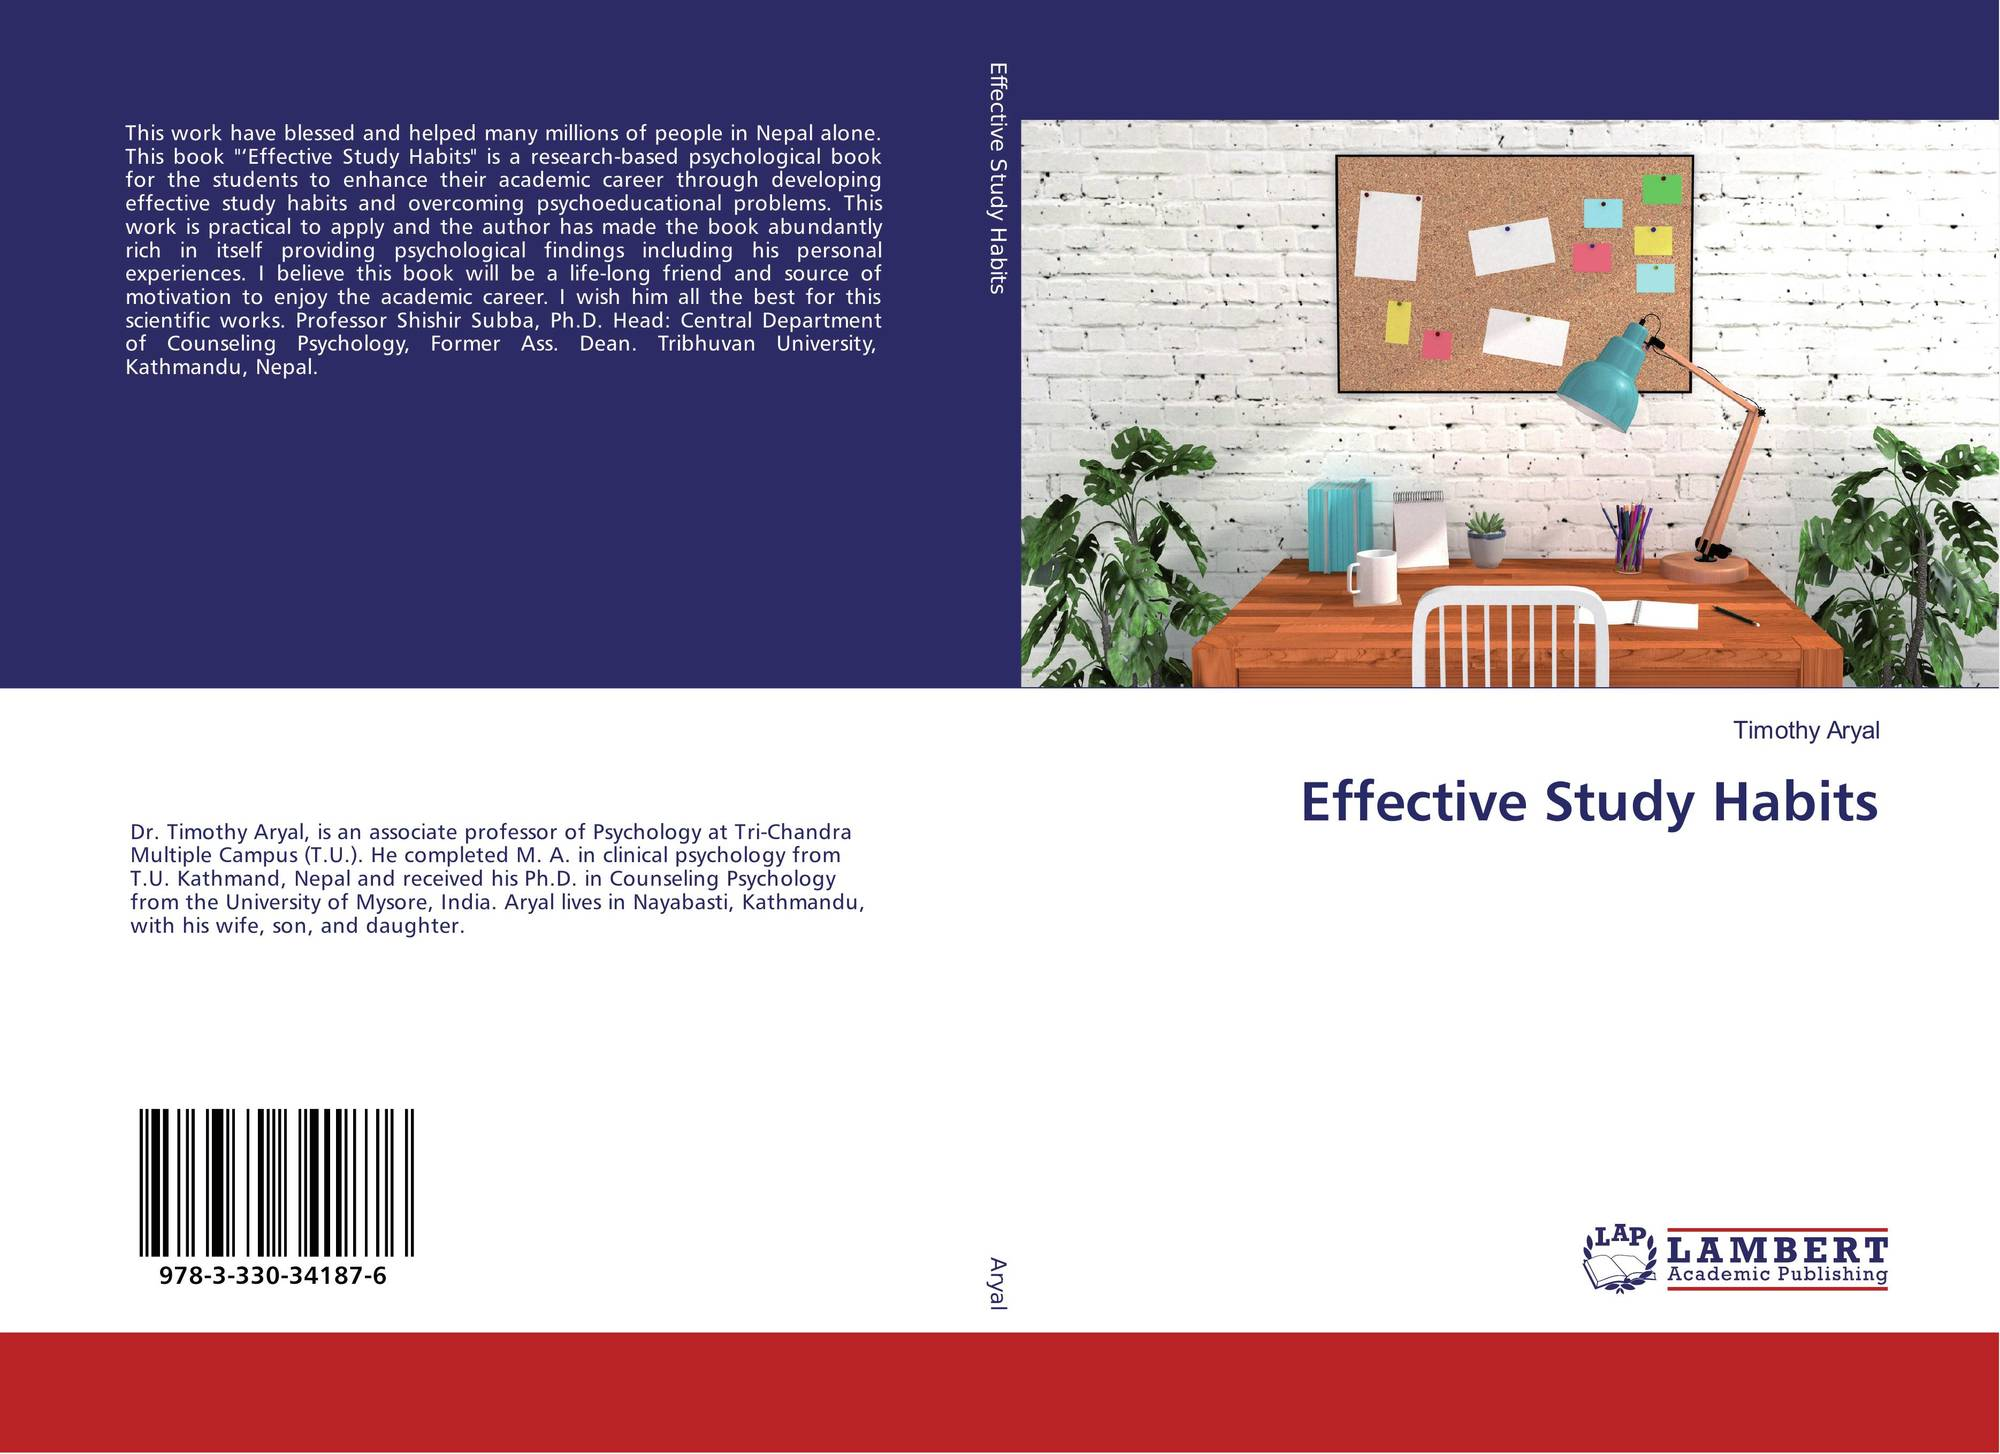 effective study habits Amazoncom: keys to effective learning: study skills and habits for success (6th edition) (9780137007509): carol j carter, joyce bishop, sarah lyman kravits: books.